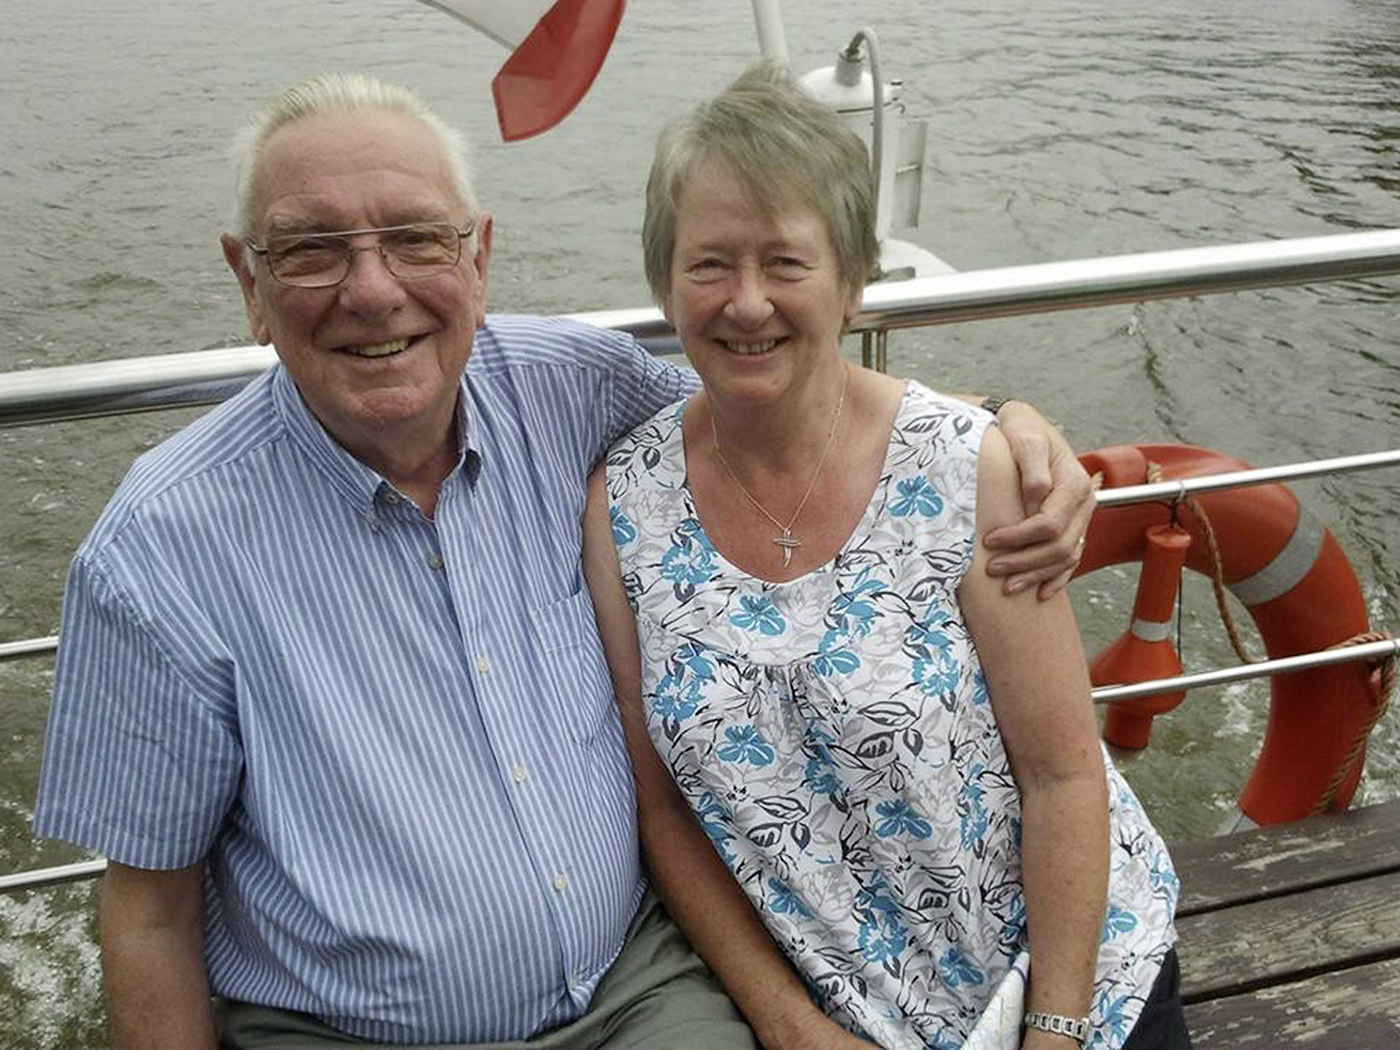 Ted and his wife Daisy